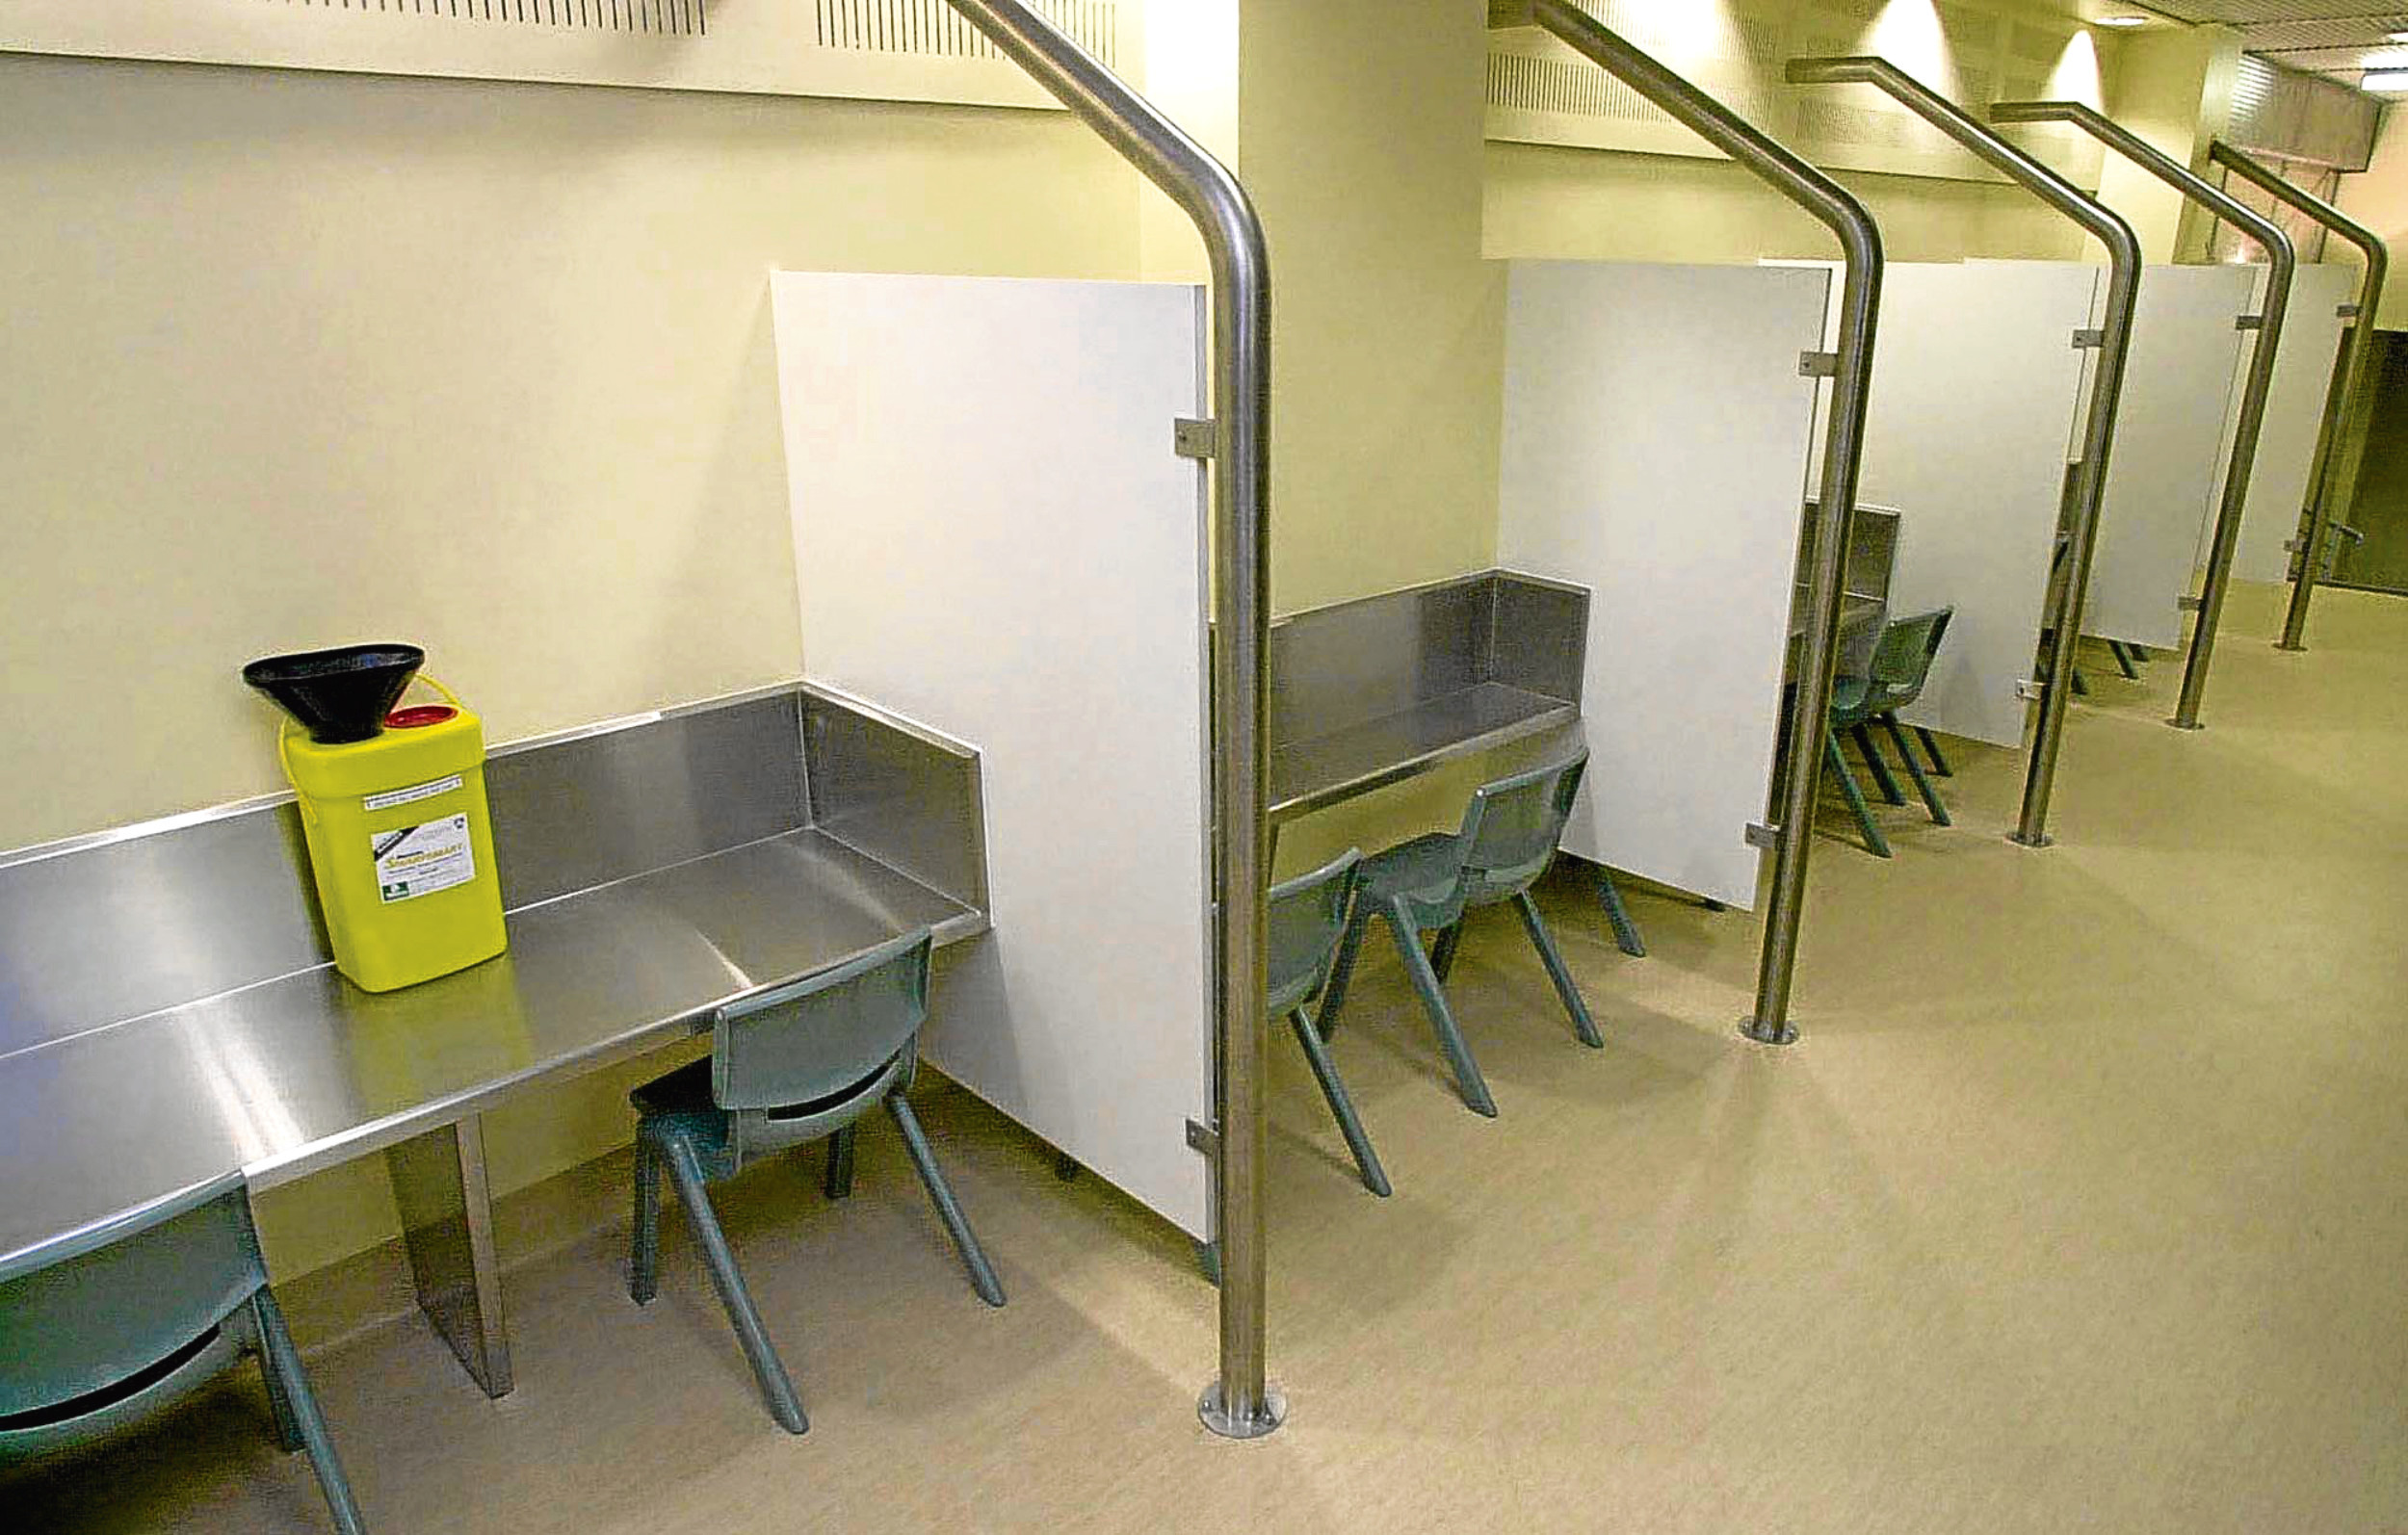 An injecting centre for drug addicts in Sydney. A similar scheme is could be considered in Dundee